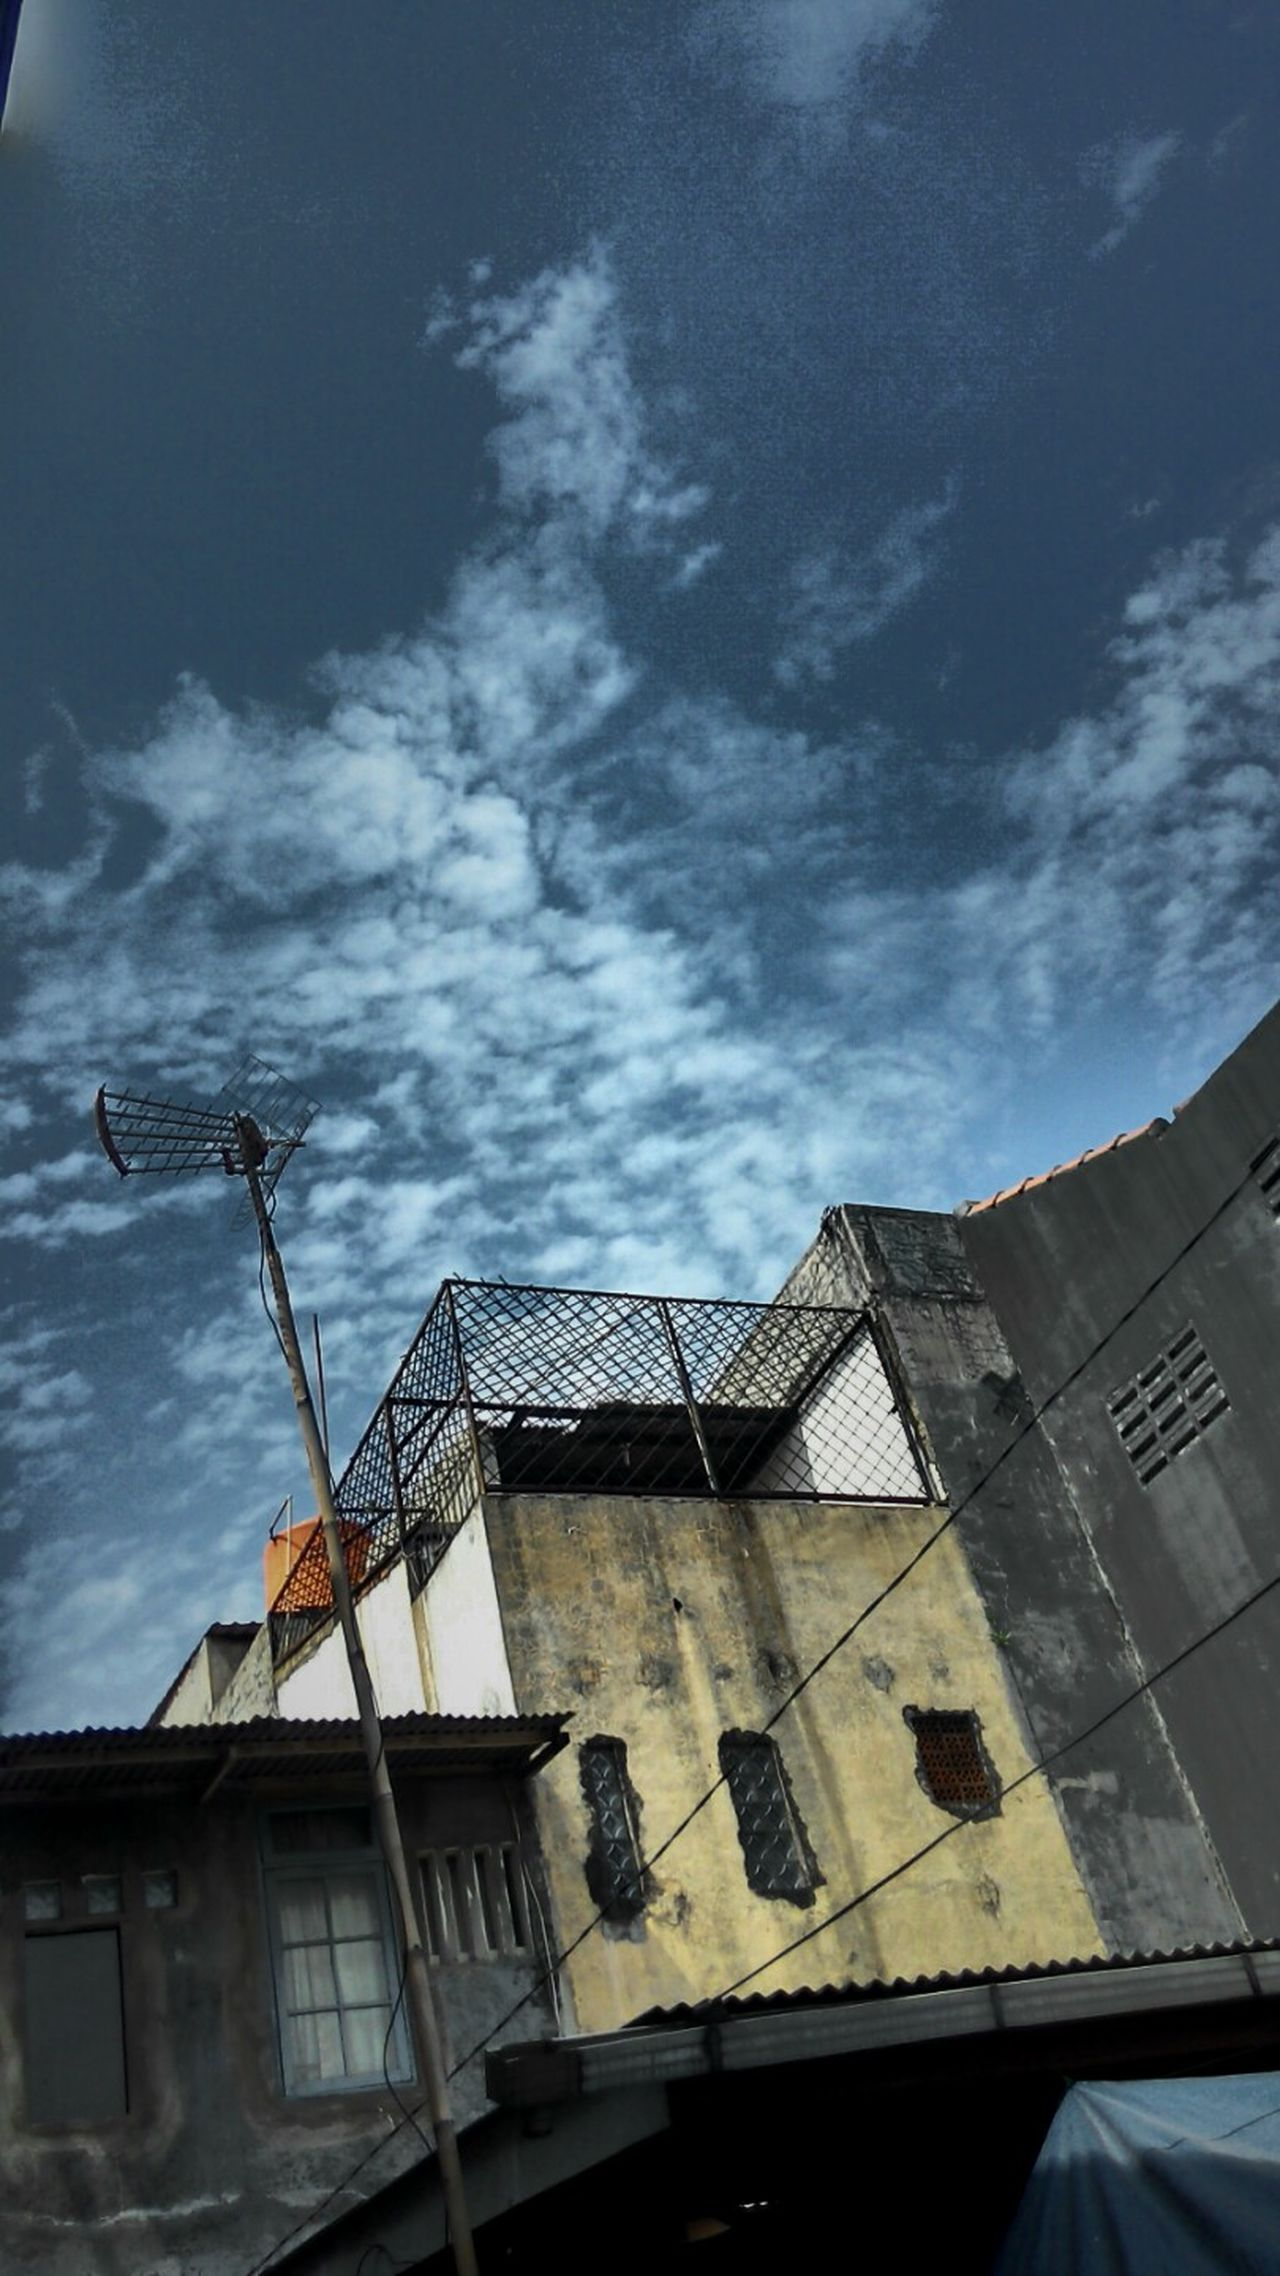 Sky Skylovers Building Buildings Building And Sky EyeEm Nature Lover Eyem Best Shots The Moment - 2015 EyeEm Awards The Architect - 2015 EyeEm Awards My Best Photo 2015